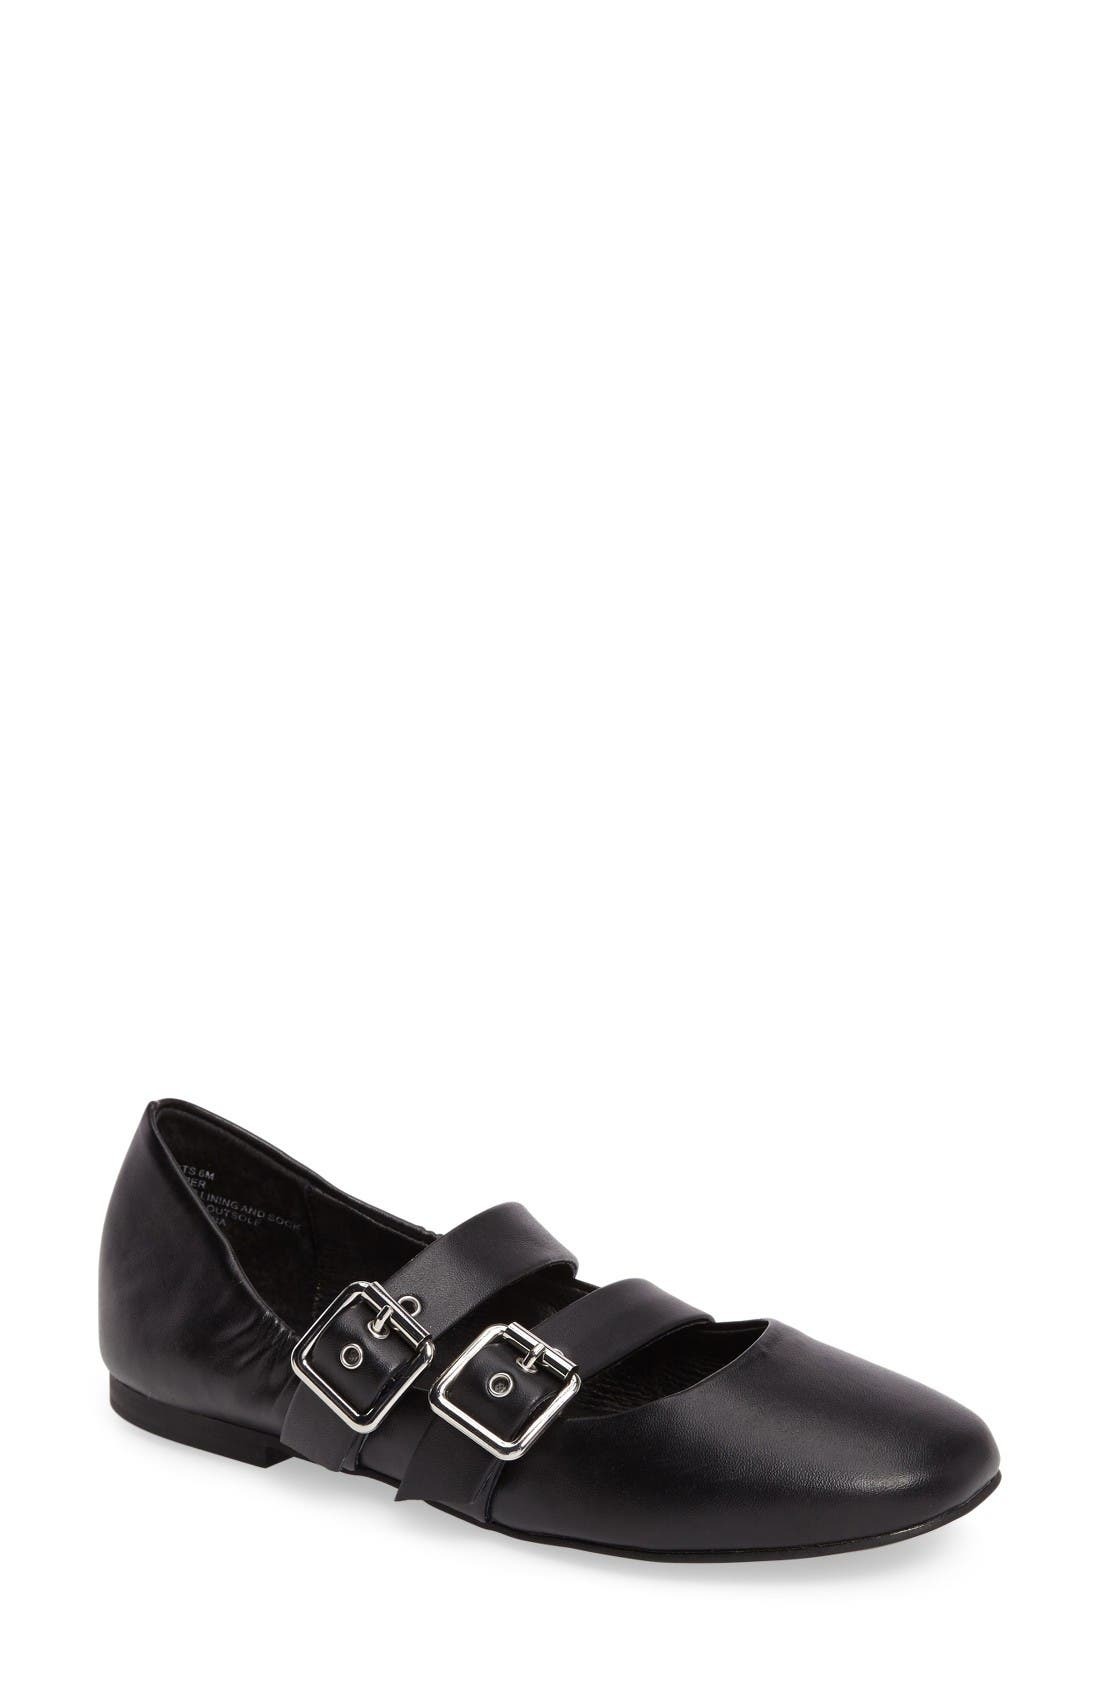 Alternate Image 1 Selected - Steve Madden Spirits Buckle Flat (Women)